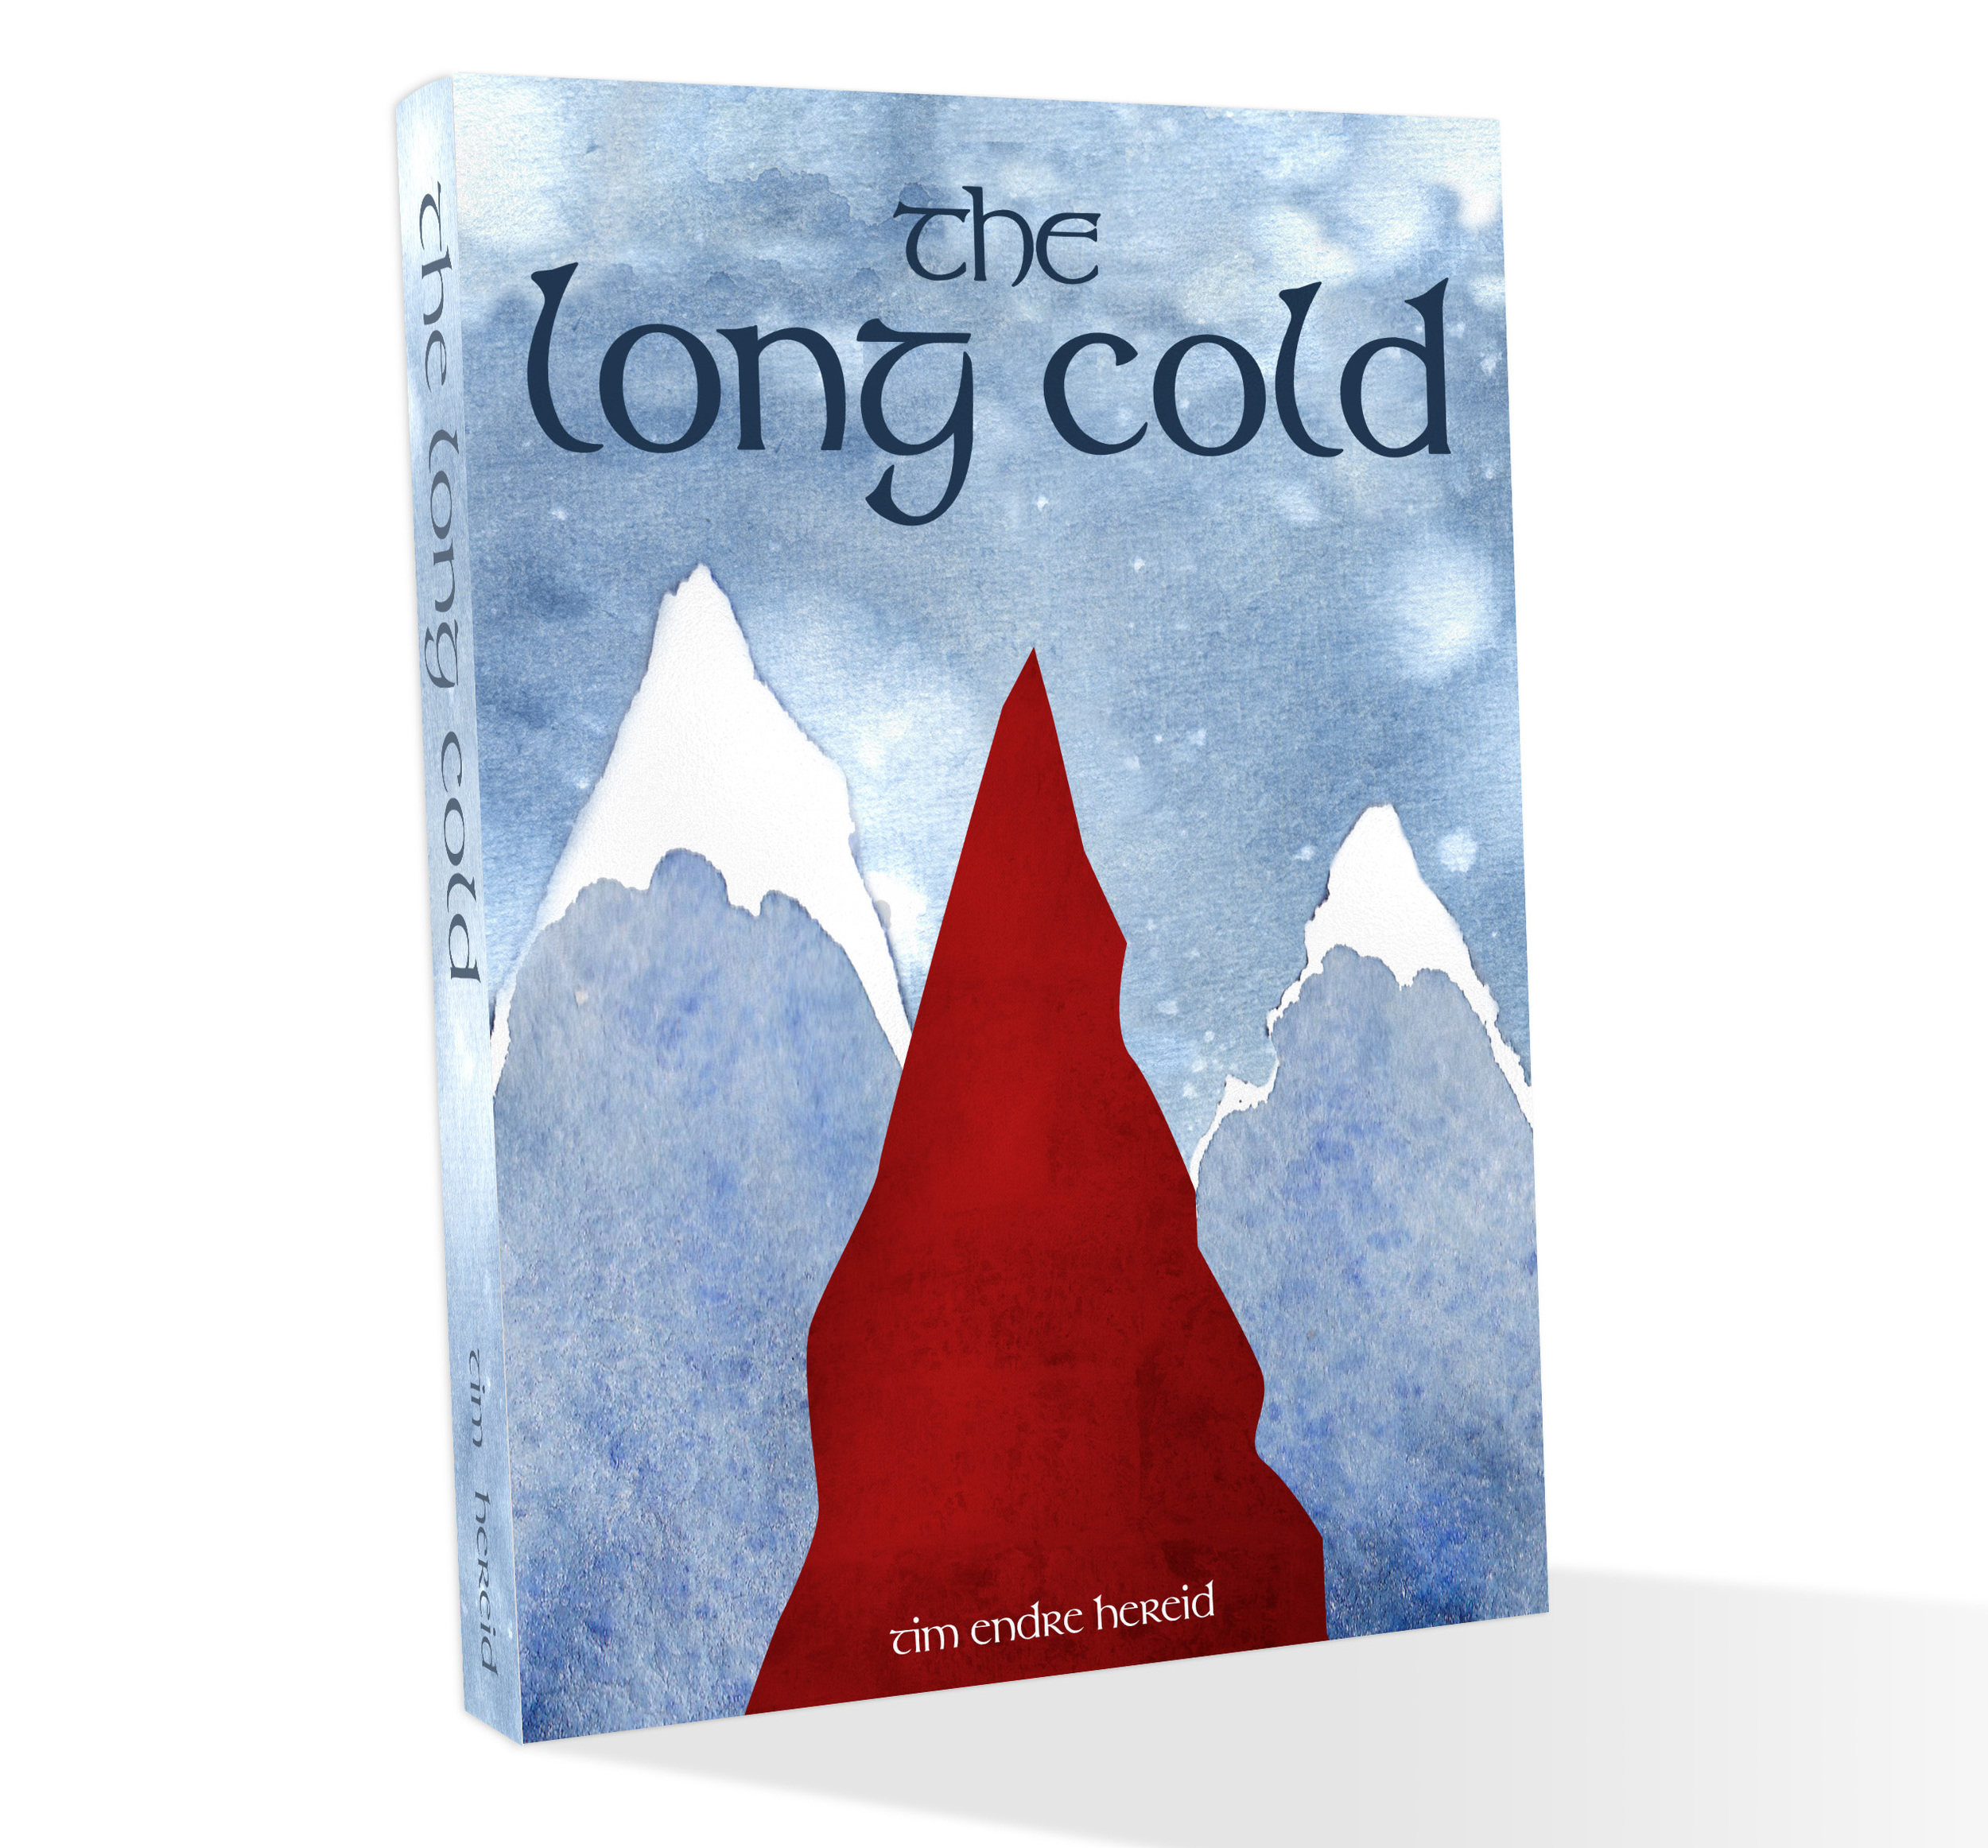 The Long Cold - It is the bitterest of storms during the longest winter Odveig has ever seen. Worse, an avalanche has raged over the faraway Gruthold Valley where another gnome and a herd of reindeer have gone to seek shelter. Alone and far from the Grutholds, Odveig must seek the help of animal and gnome alike, while battling the vicious cold, the ever-lurking mennesker and his own growing doubts to find Hundein and bring the herd to safety.Click here to read now for free